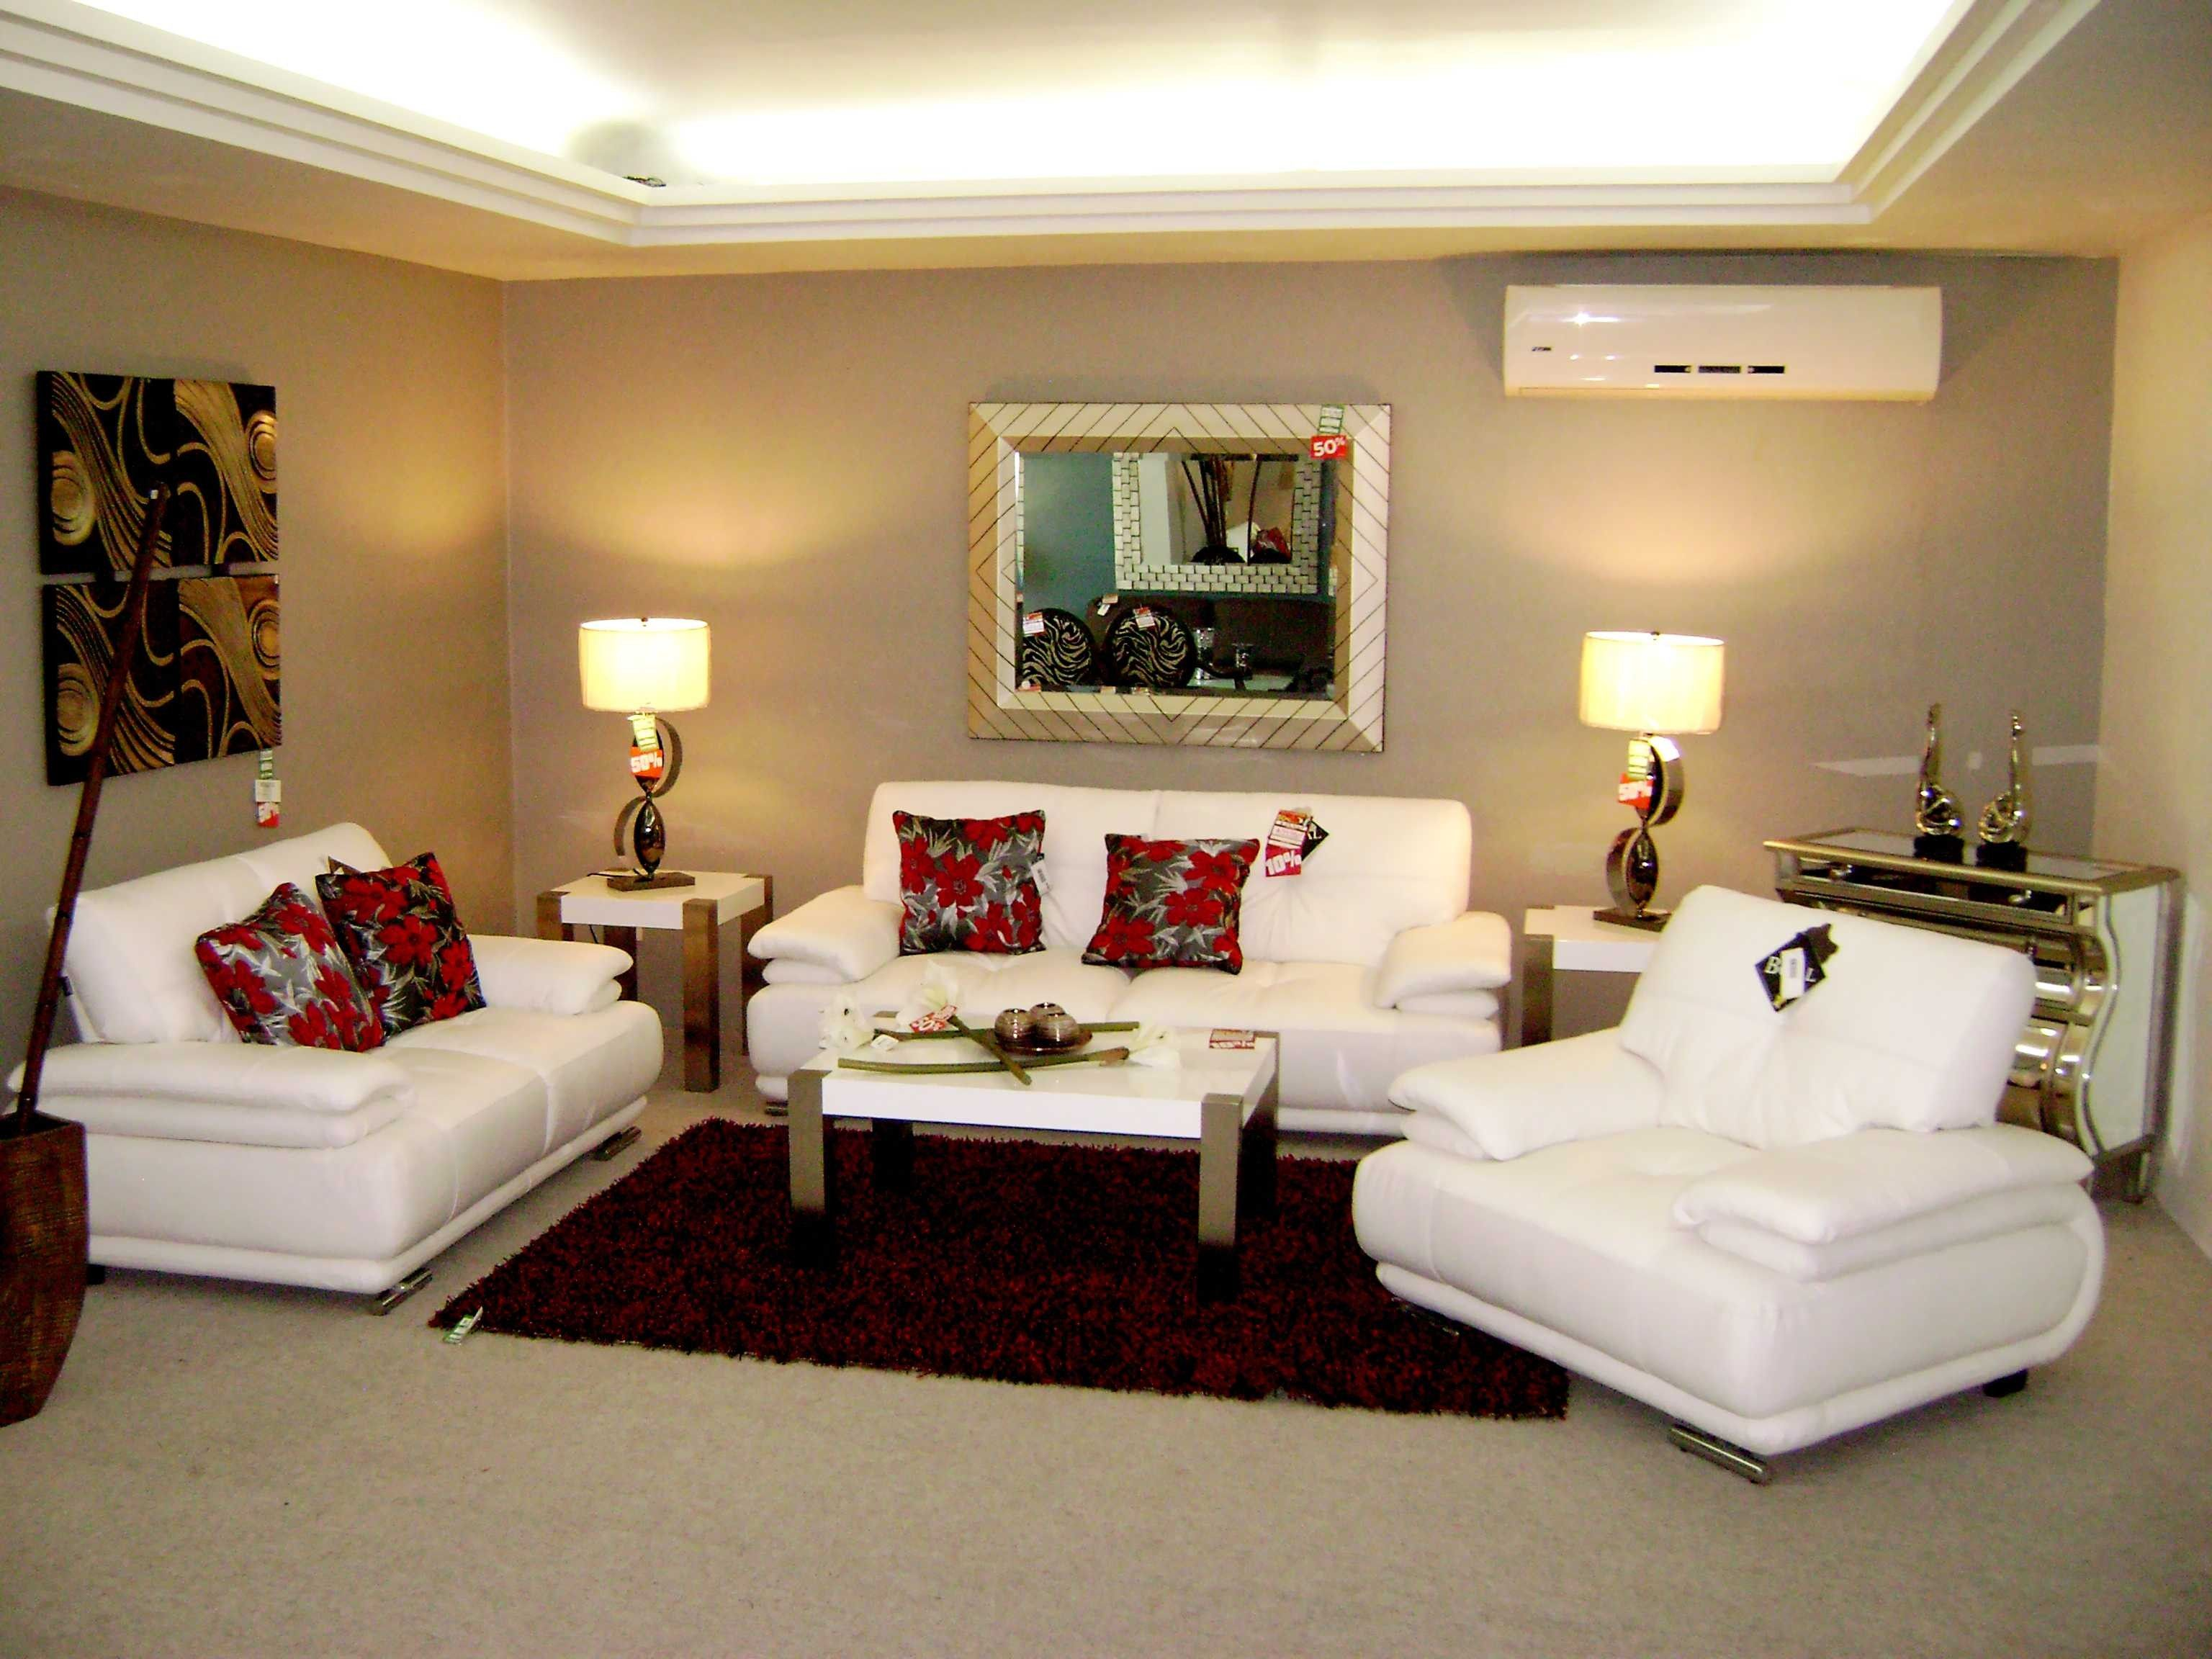 Decoracion del hogar buscar con google decoracion del for Decoracion hogar living